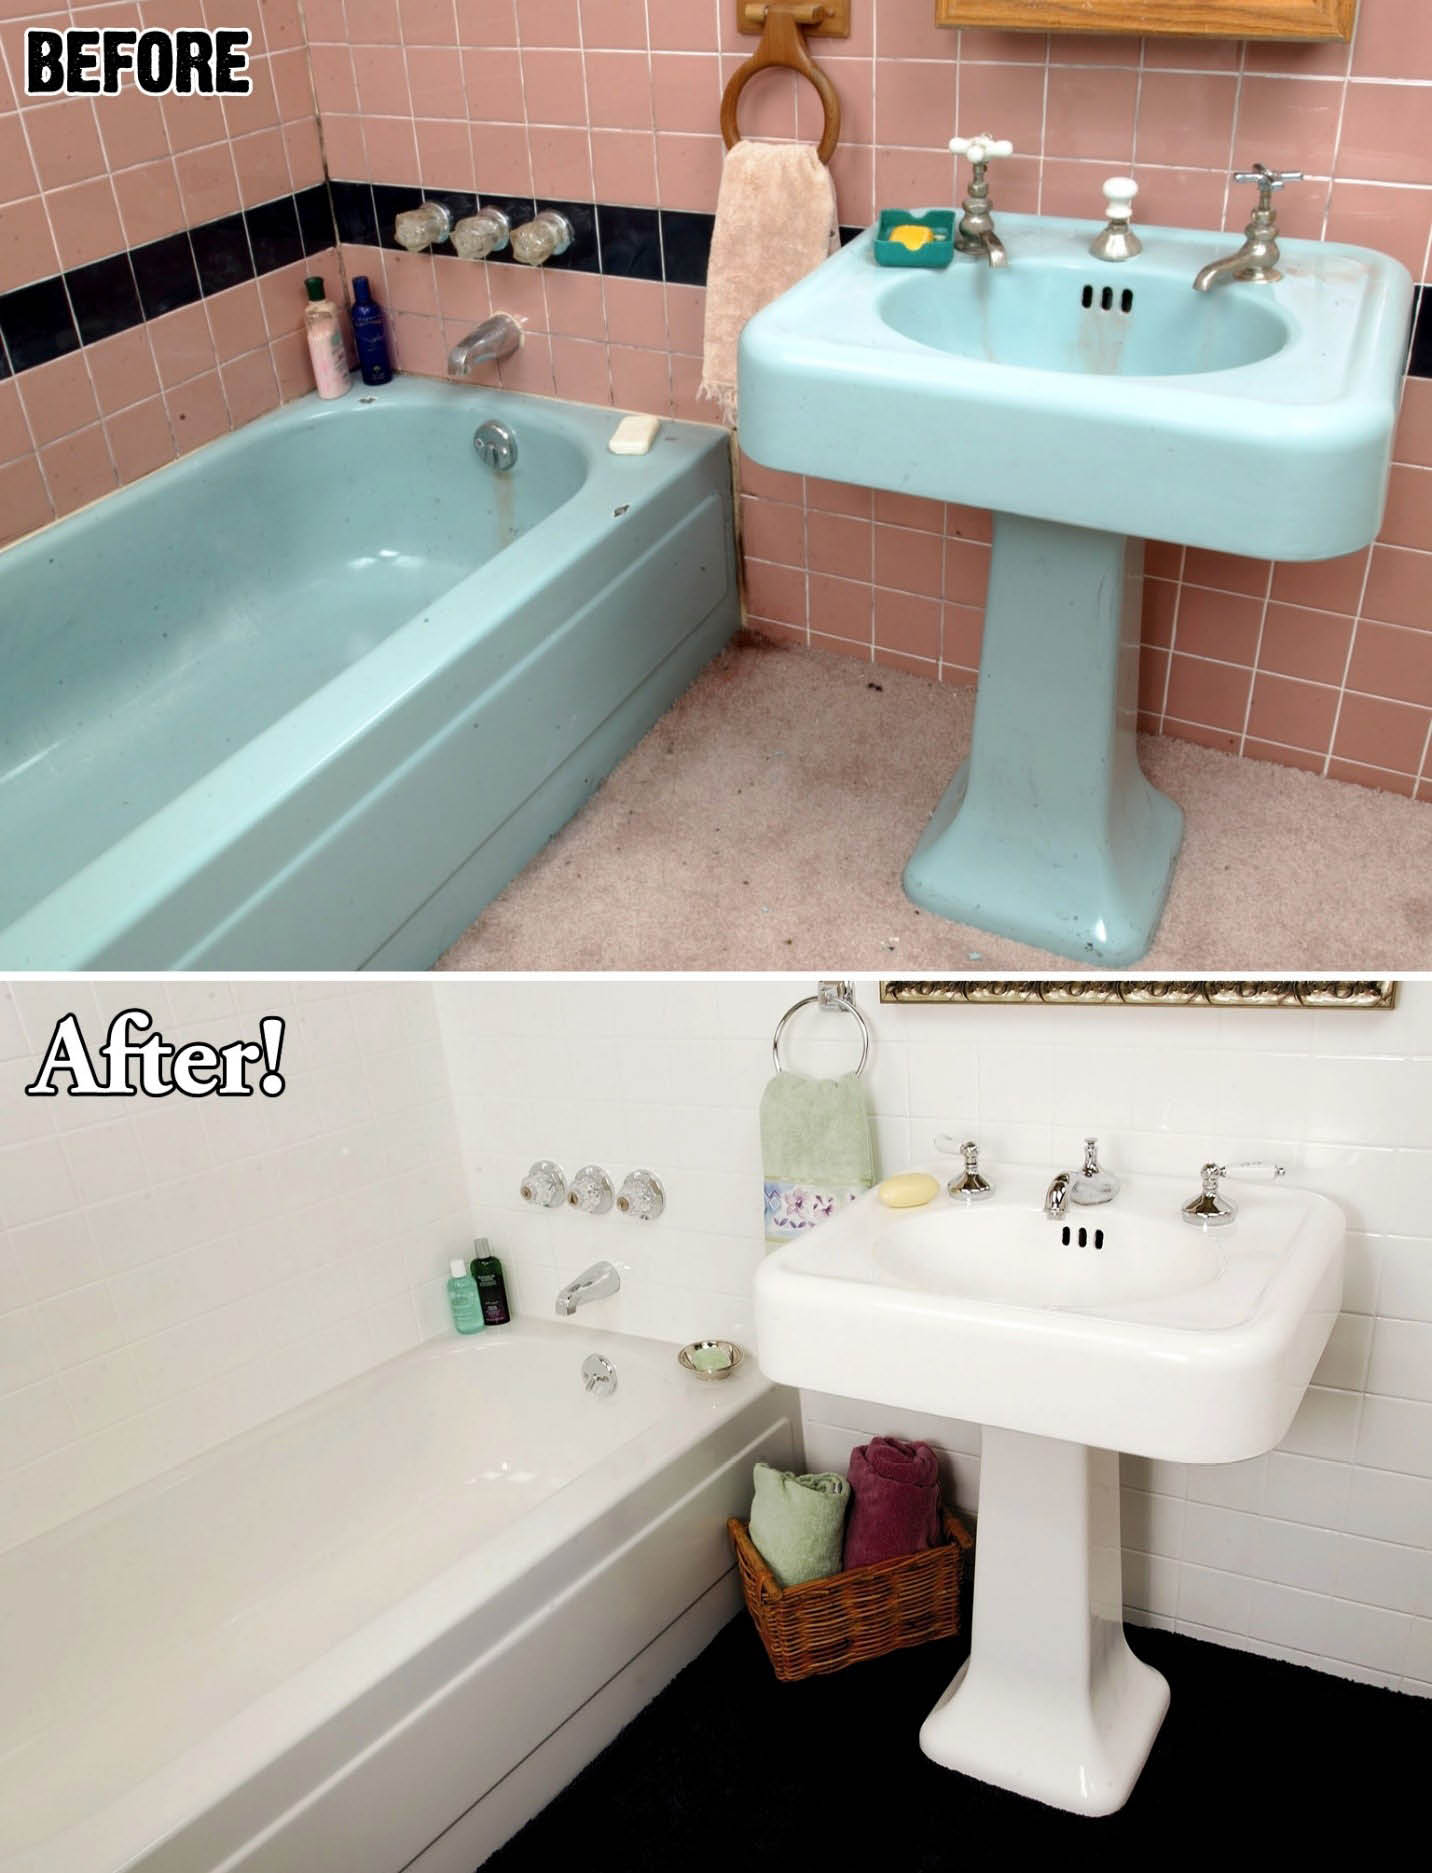 before and after bathroom; blue and pink bathroom refinished to white.